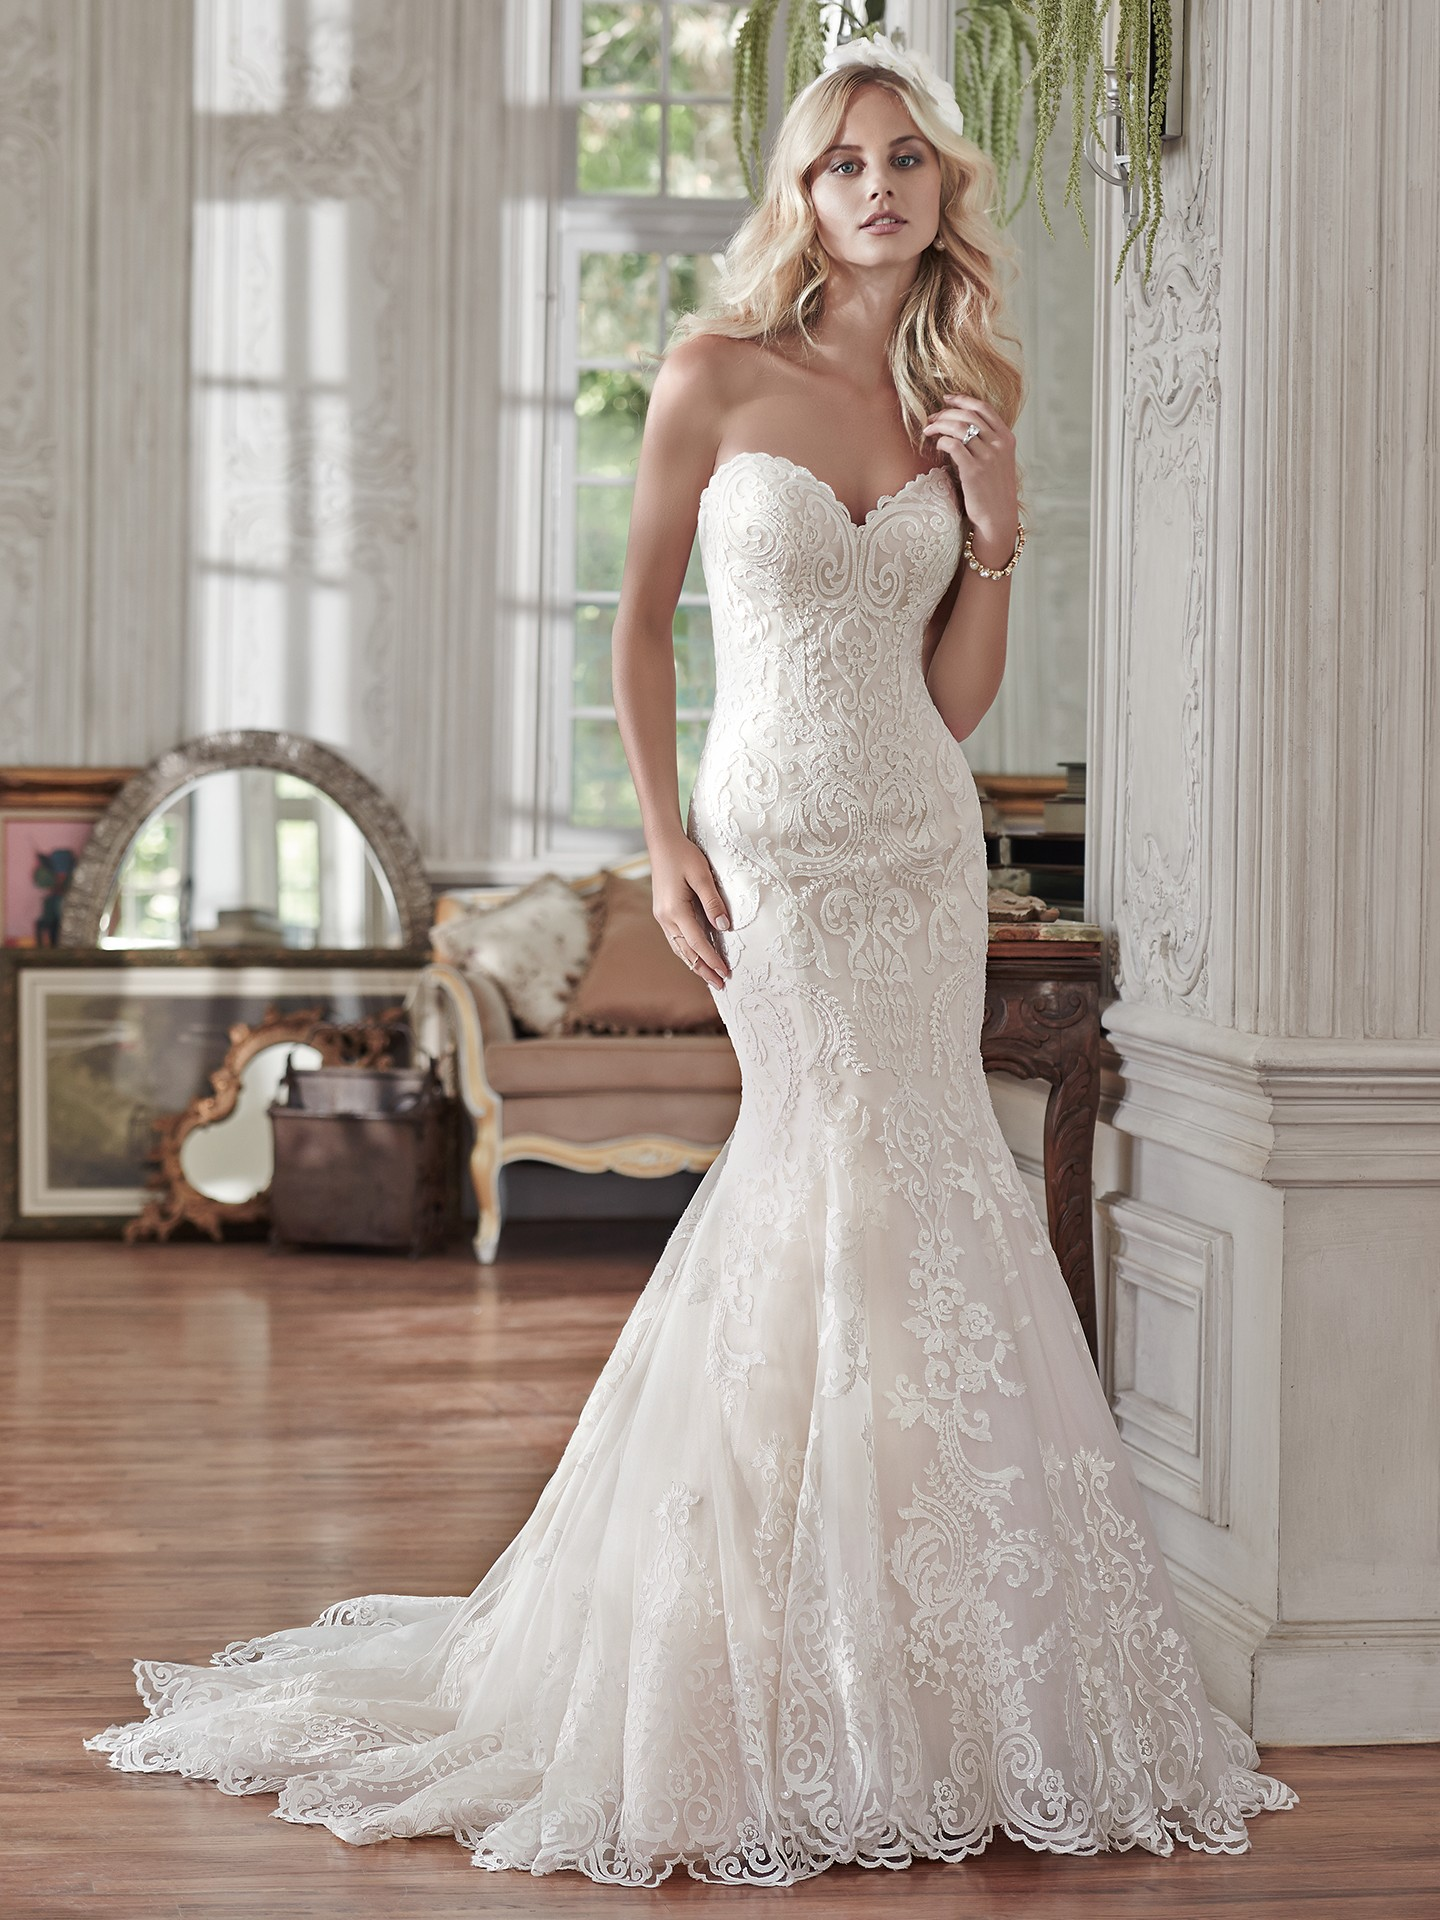 Strapless Fit And Flare Gowns With Sequined Fl Liques Rosamund By Maggie Sottero